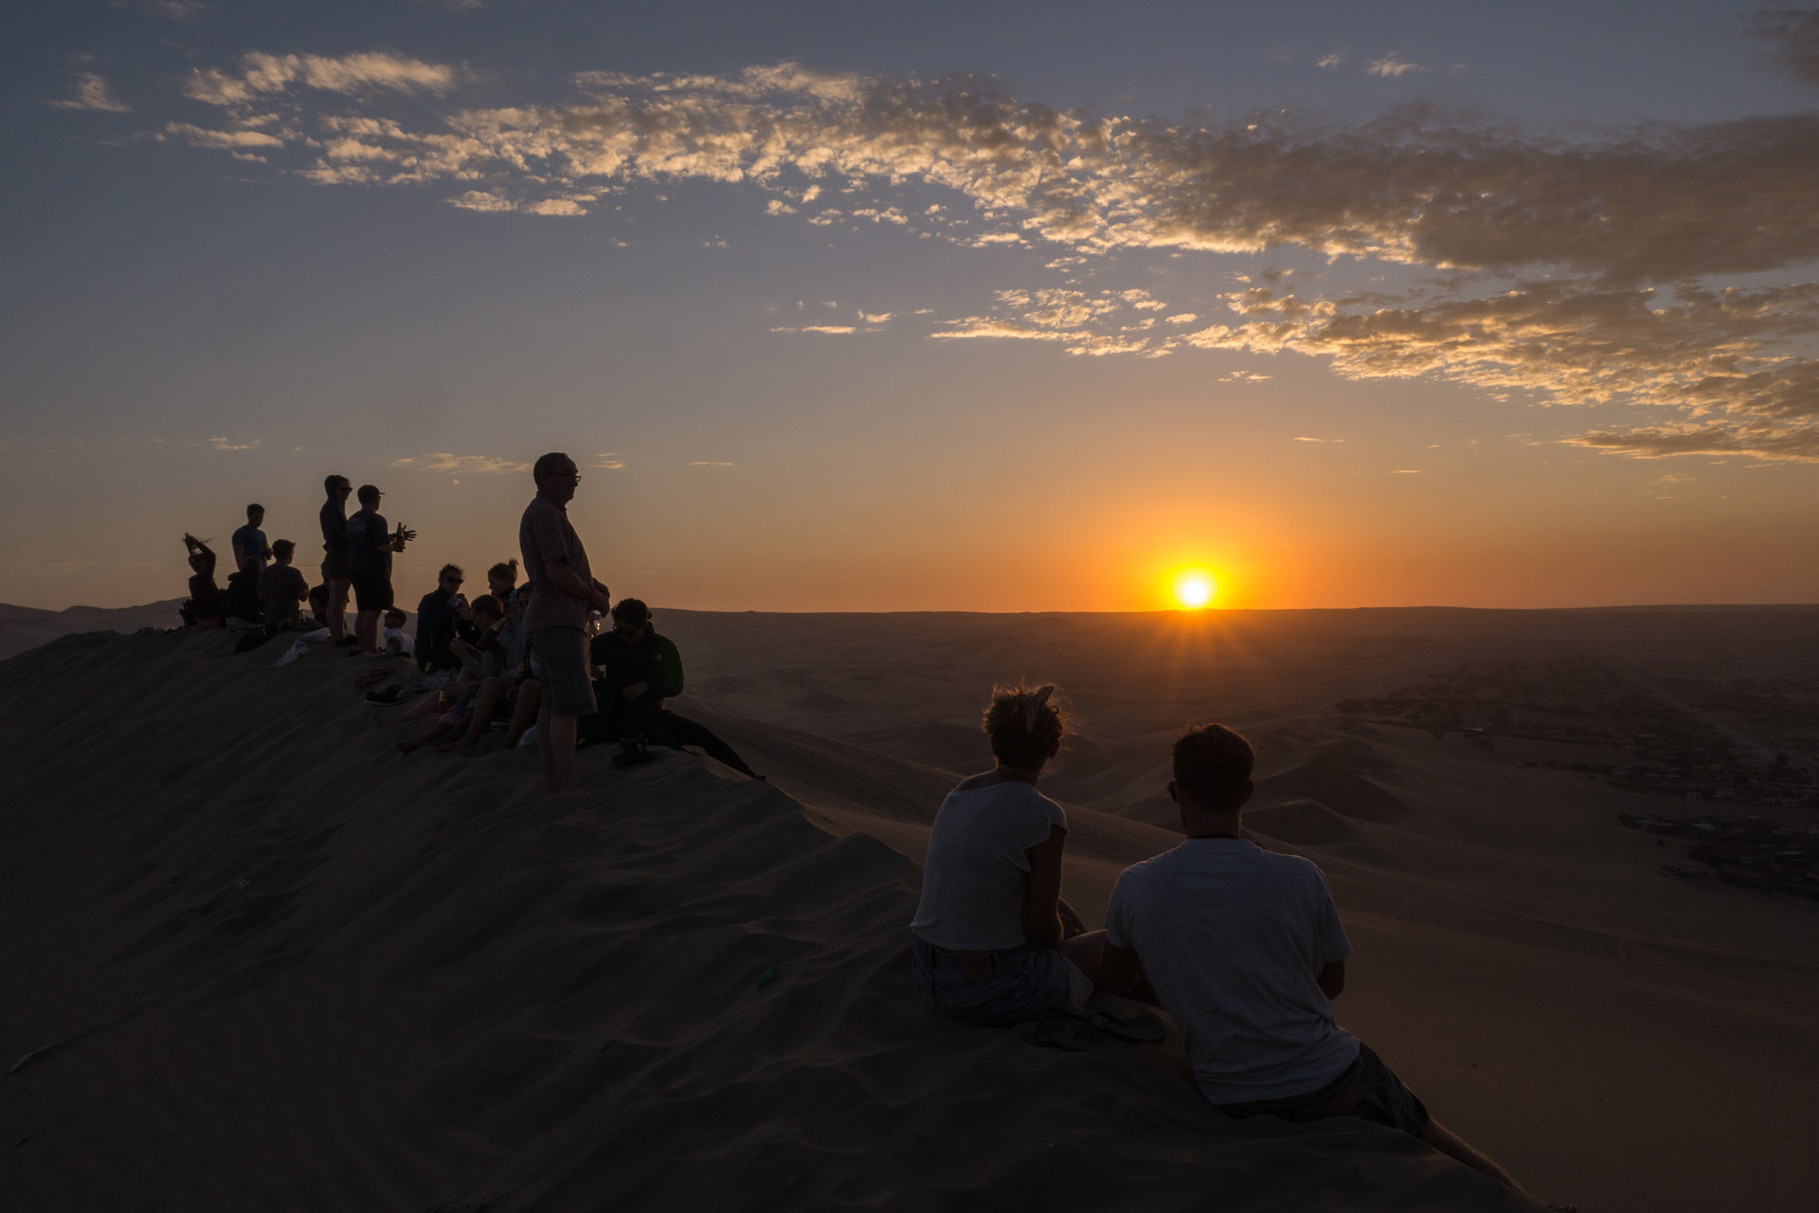 Sunset view from the top of the dune next to Huacachina